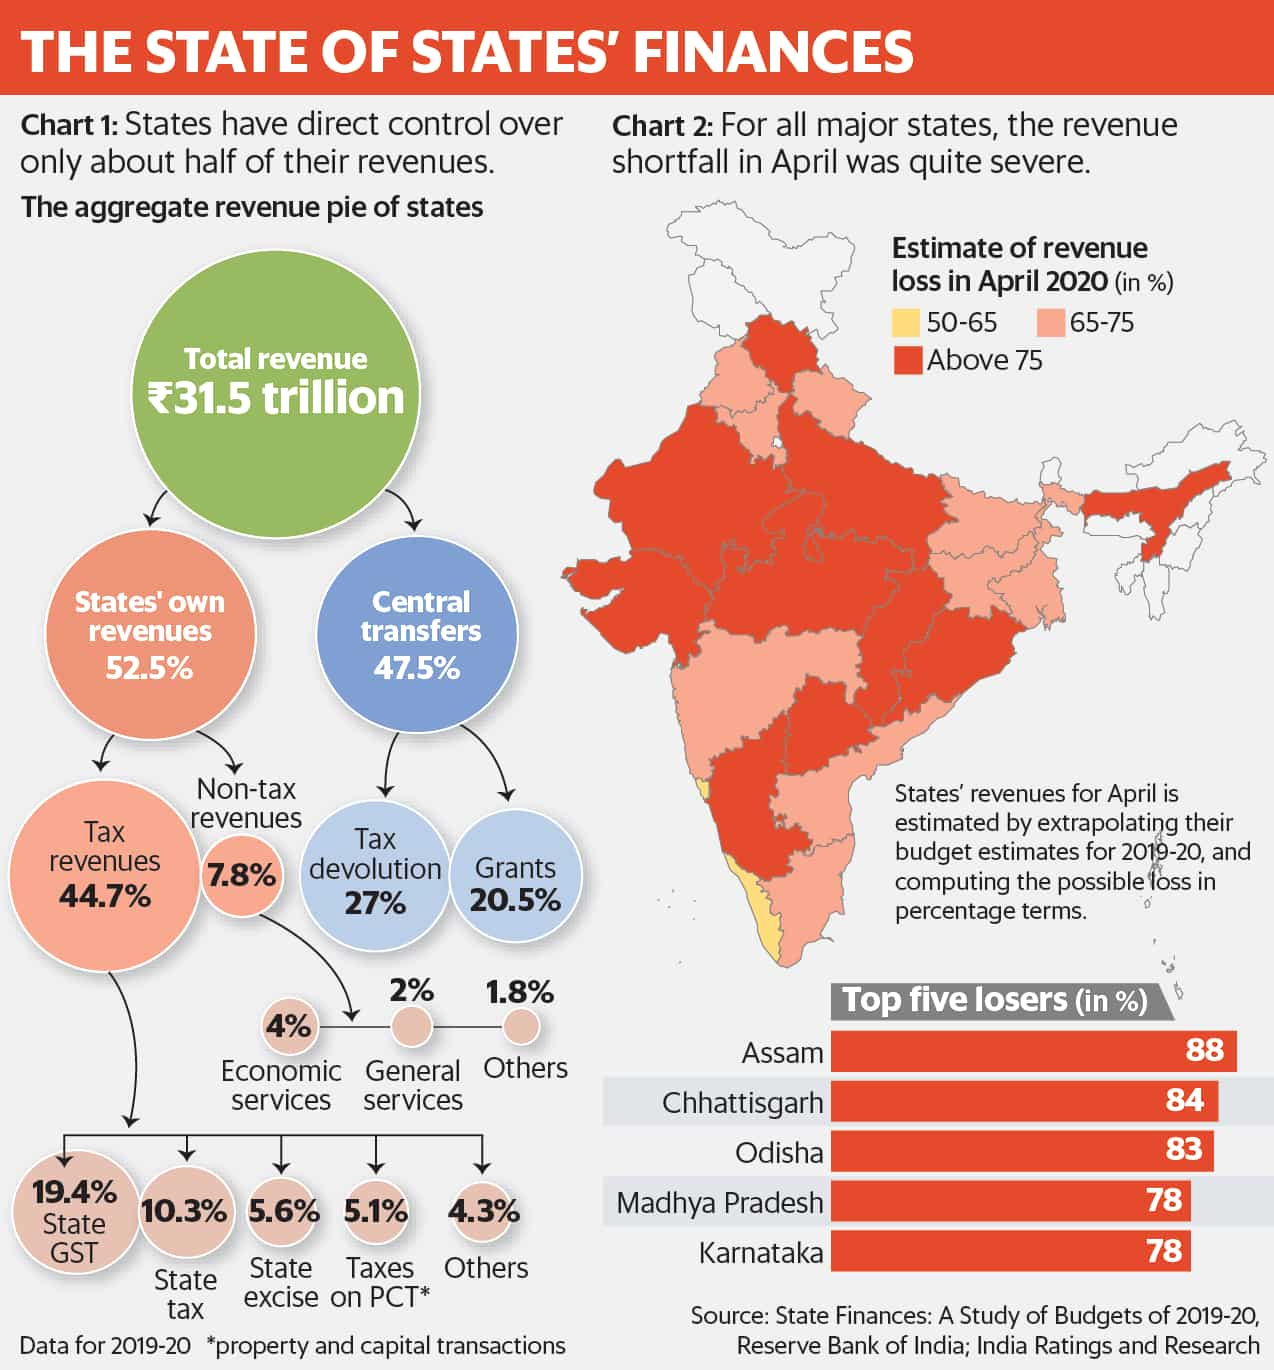 The state of states' finances